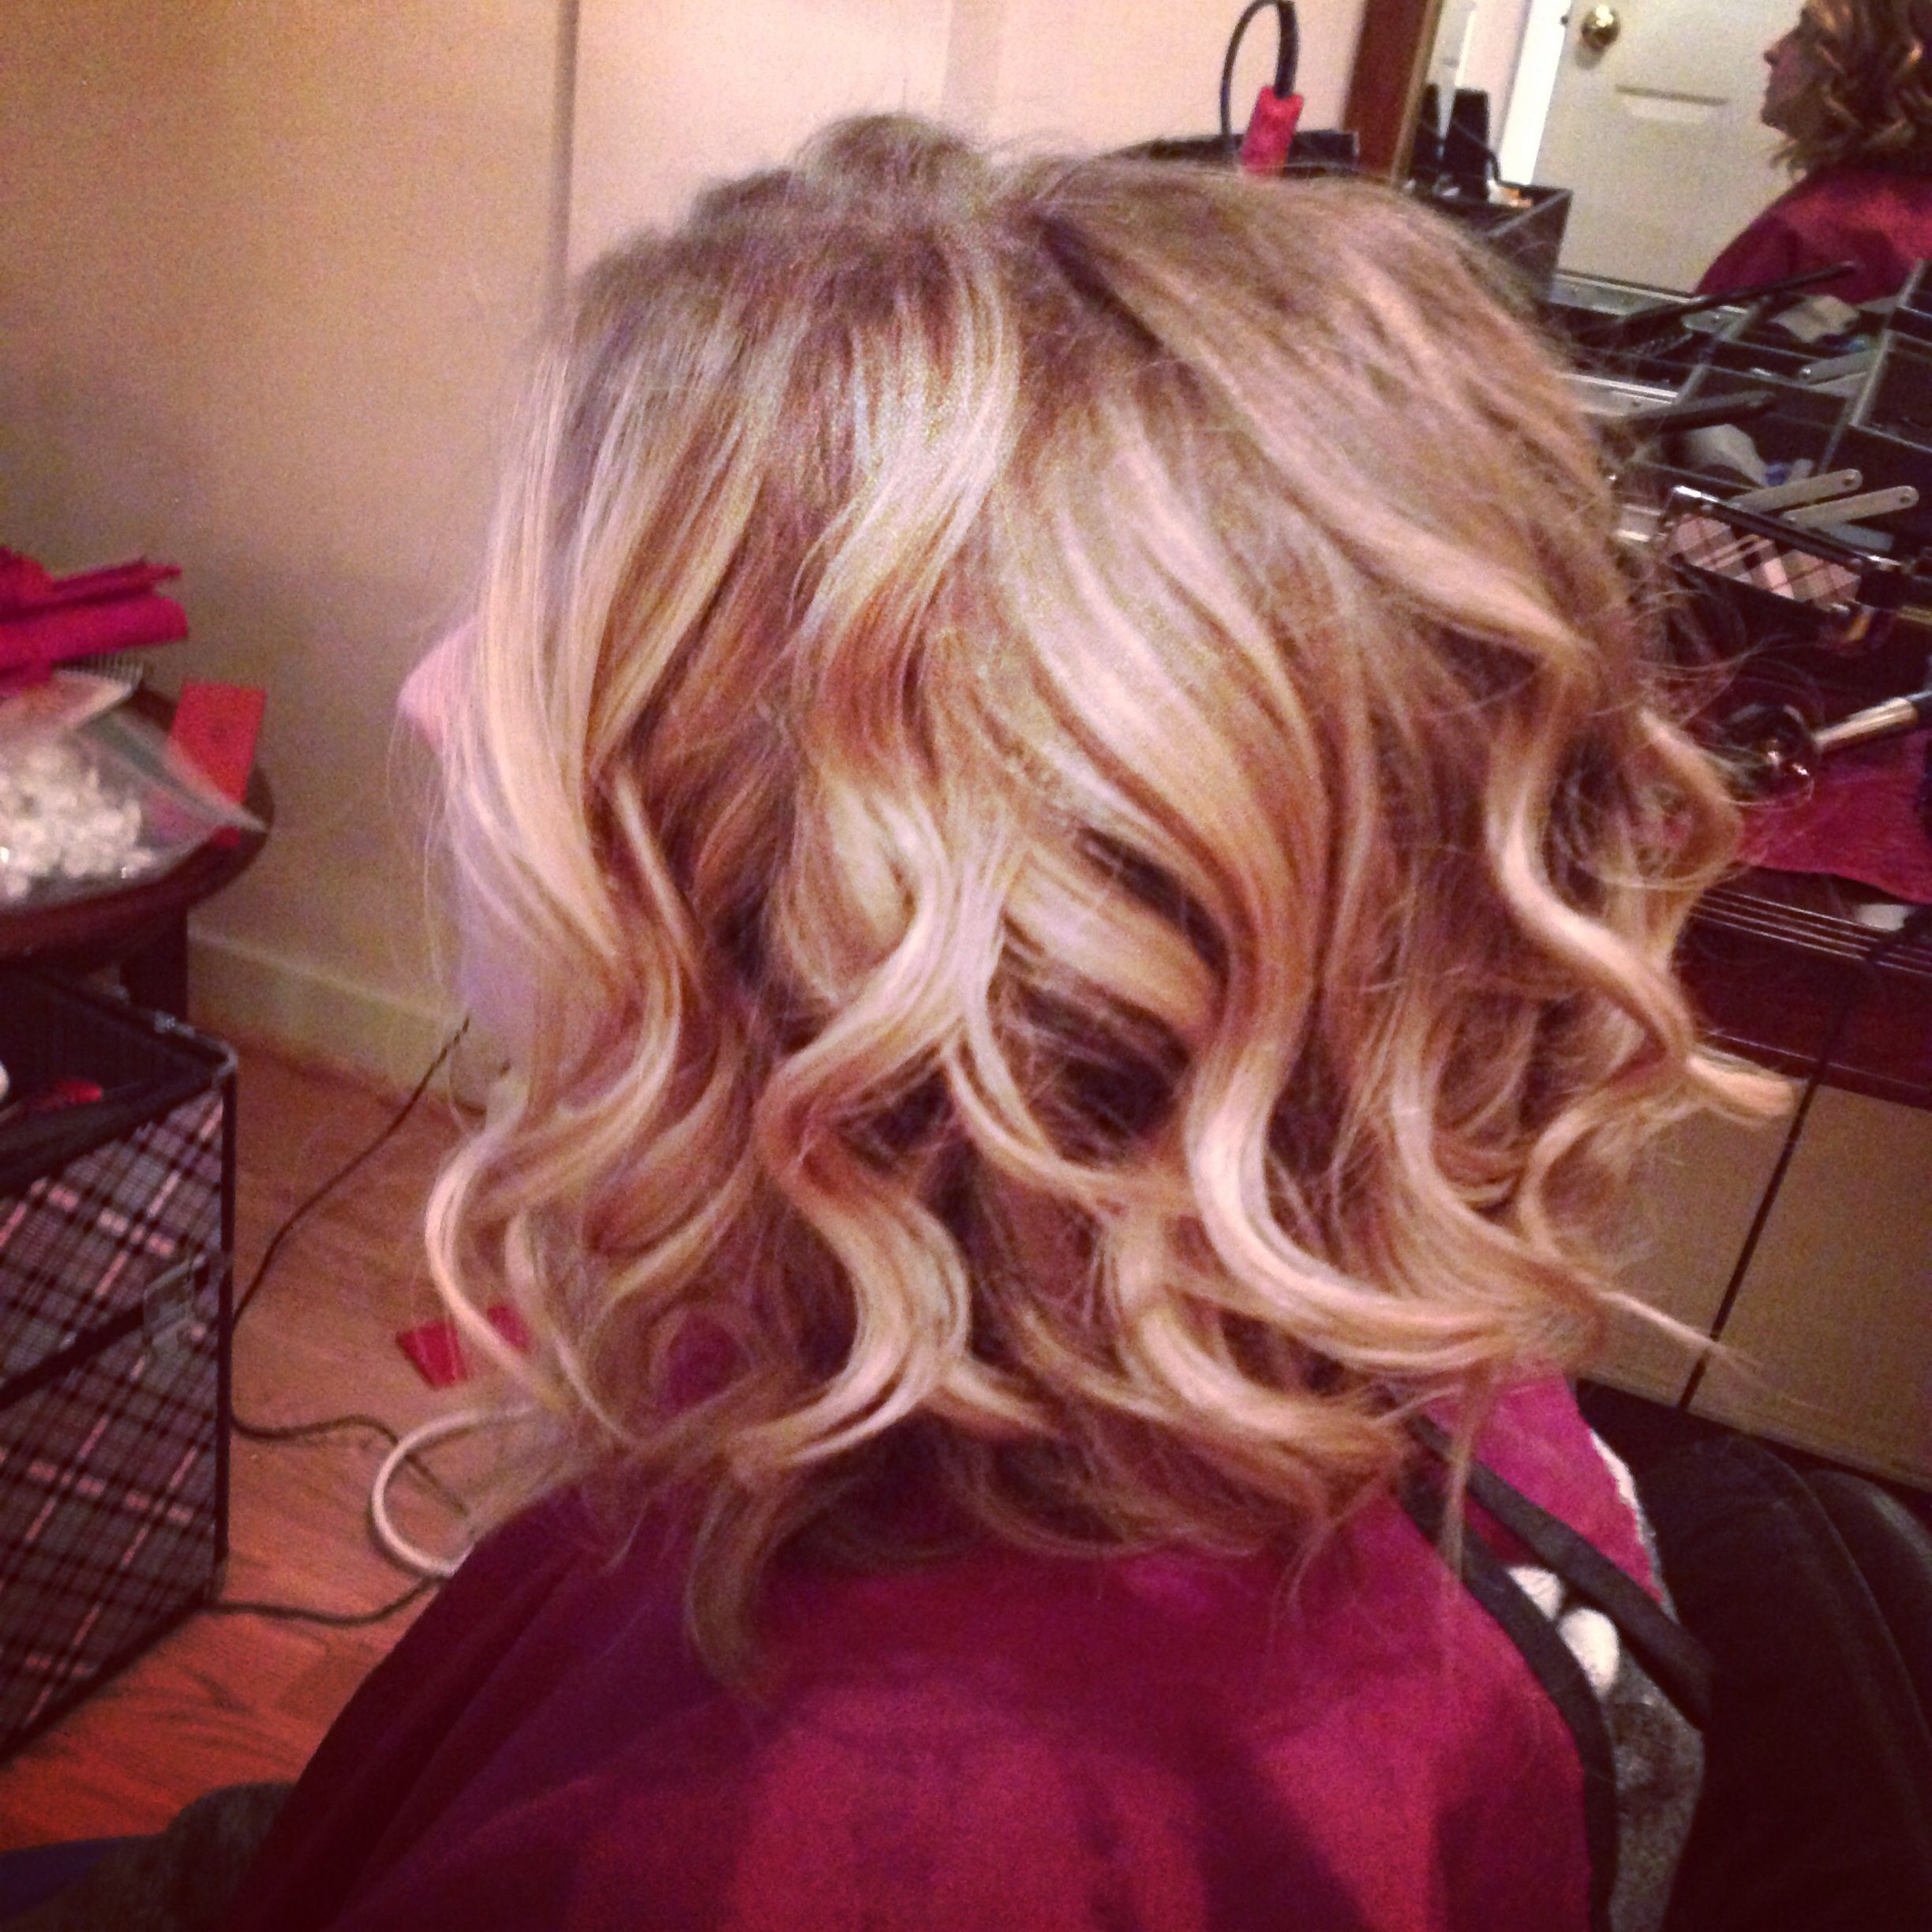 Loose Curls. Wavy Hair. Styles For Short Hair. Styles For